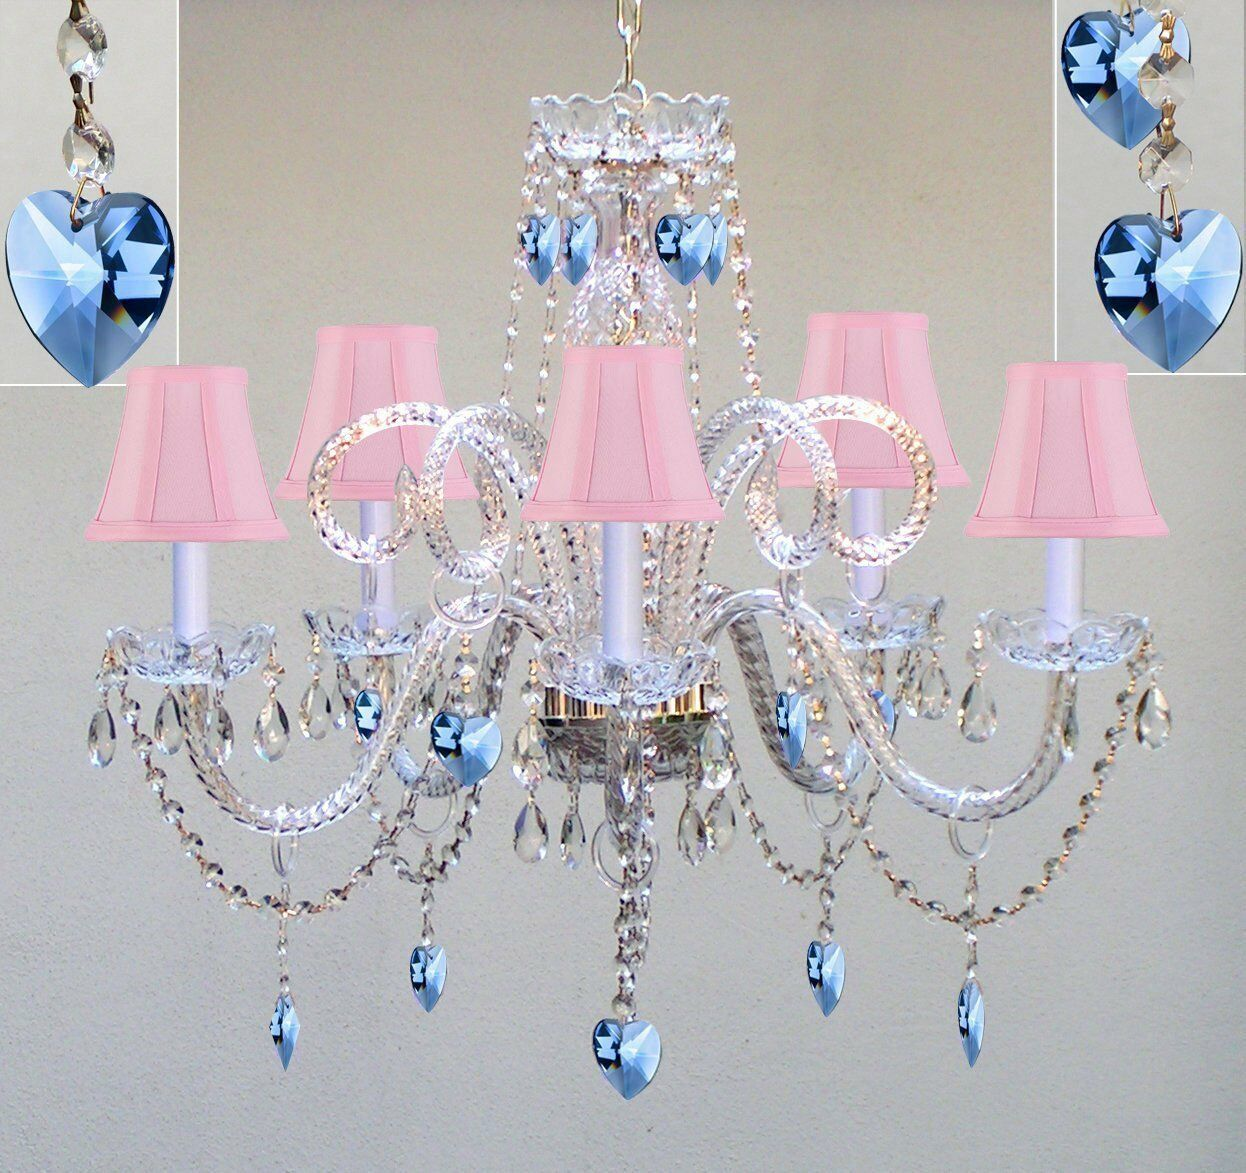 Venetian 5 Light 24 Inch Chrome Glass Pink Shades Blue Hearts Dining Chandelier Ceiling In Clear Crystals